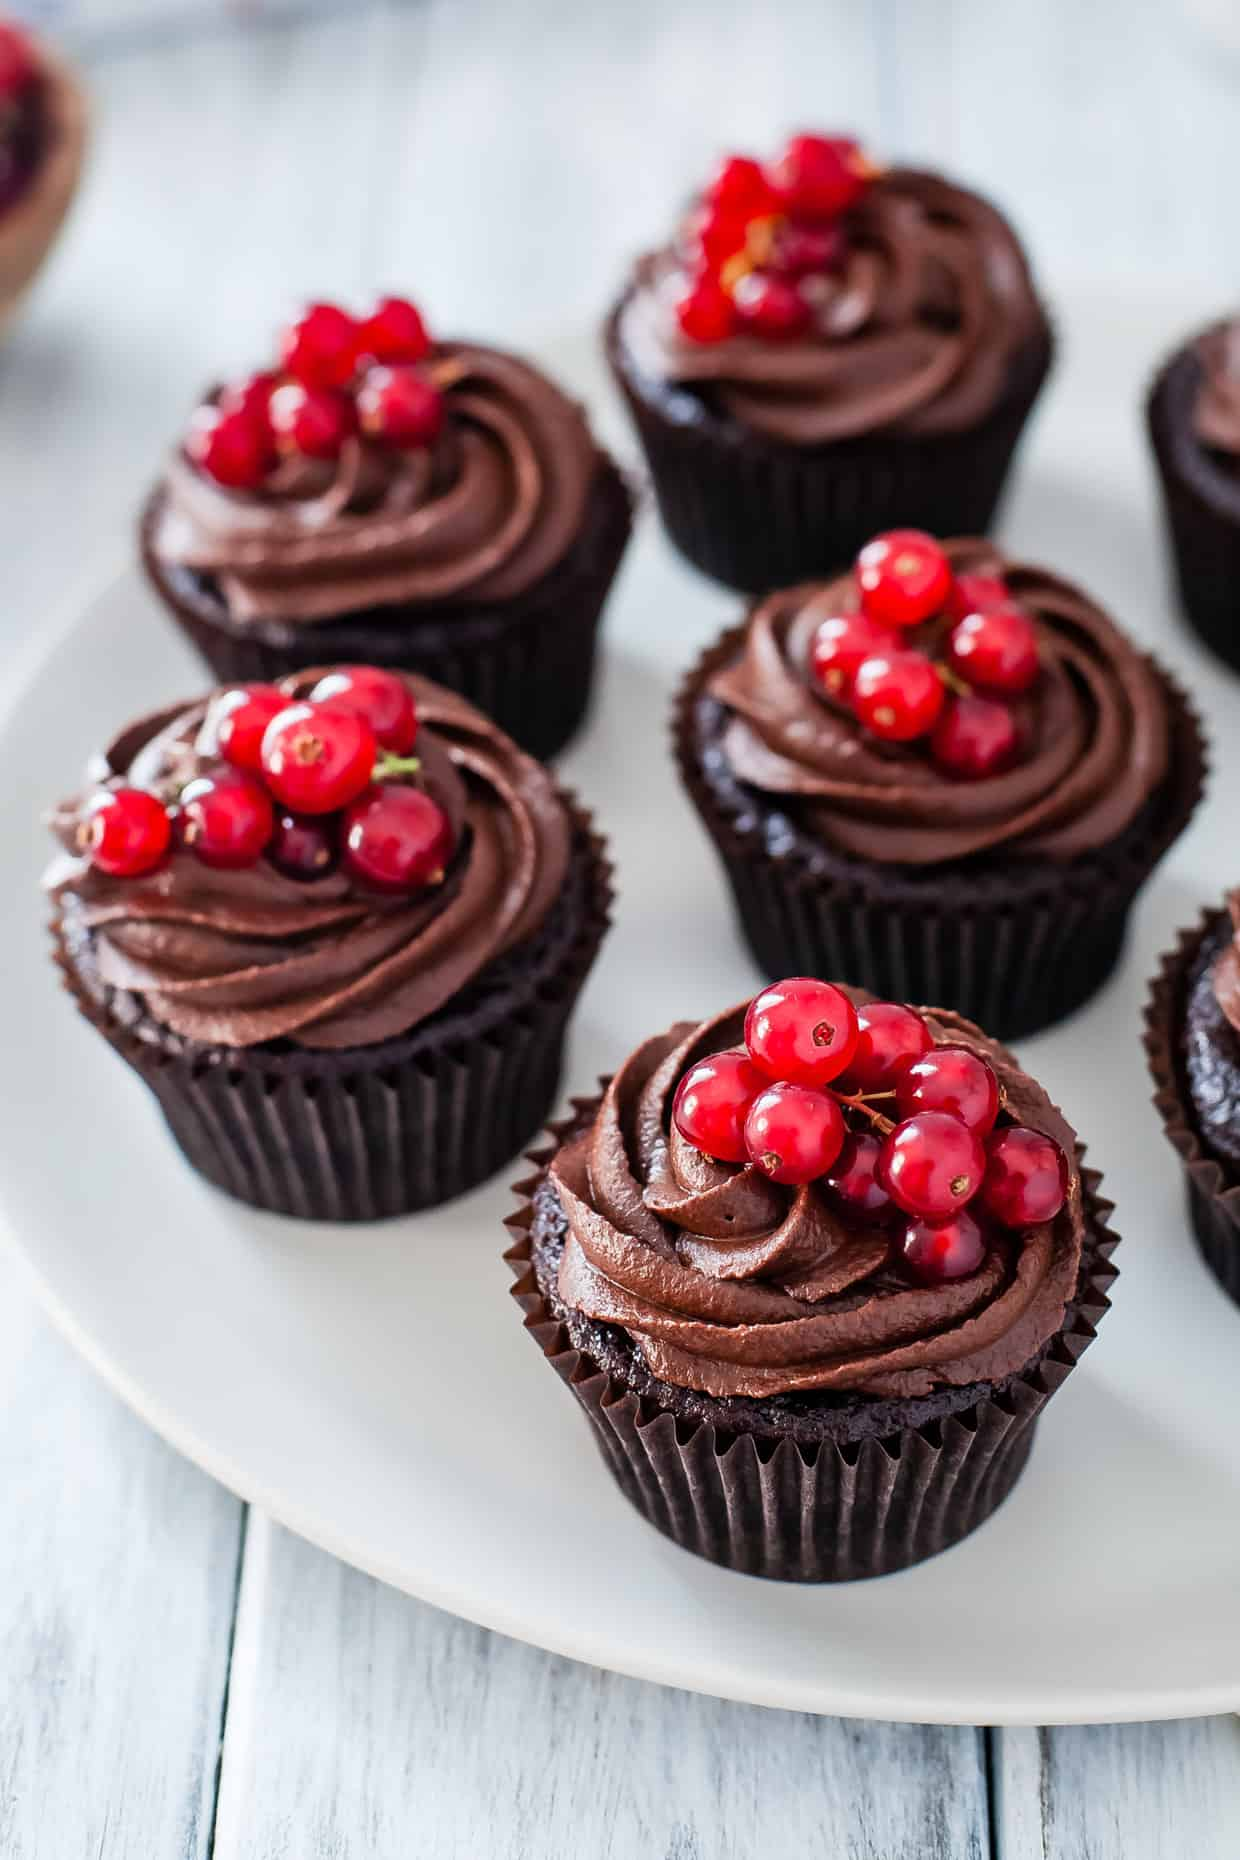 Gluten-Free Double Chocolate Cupcakes with Currant Filling